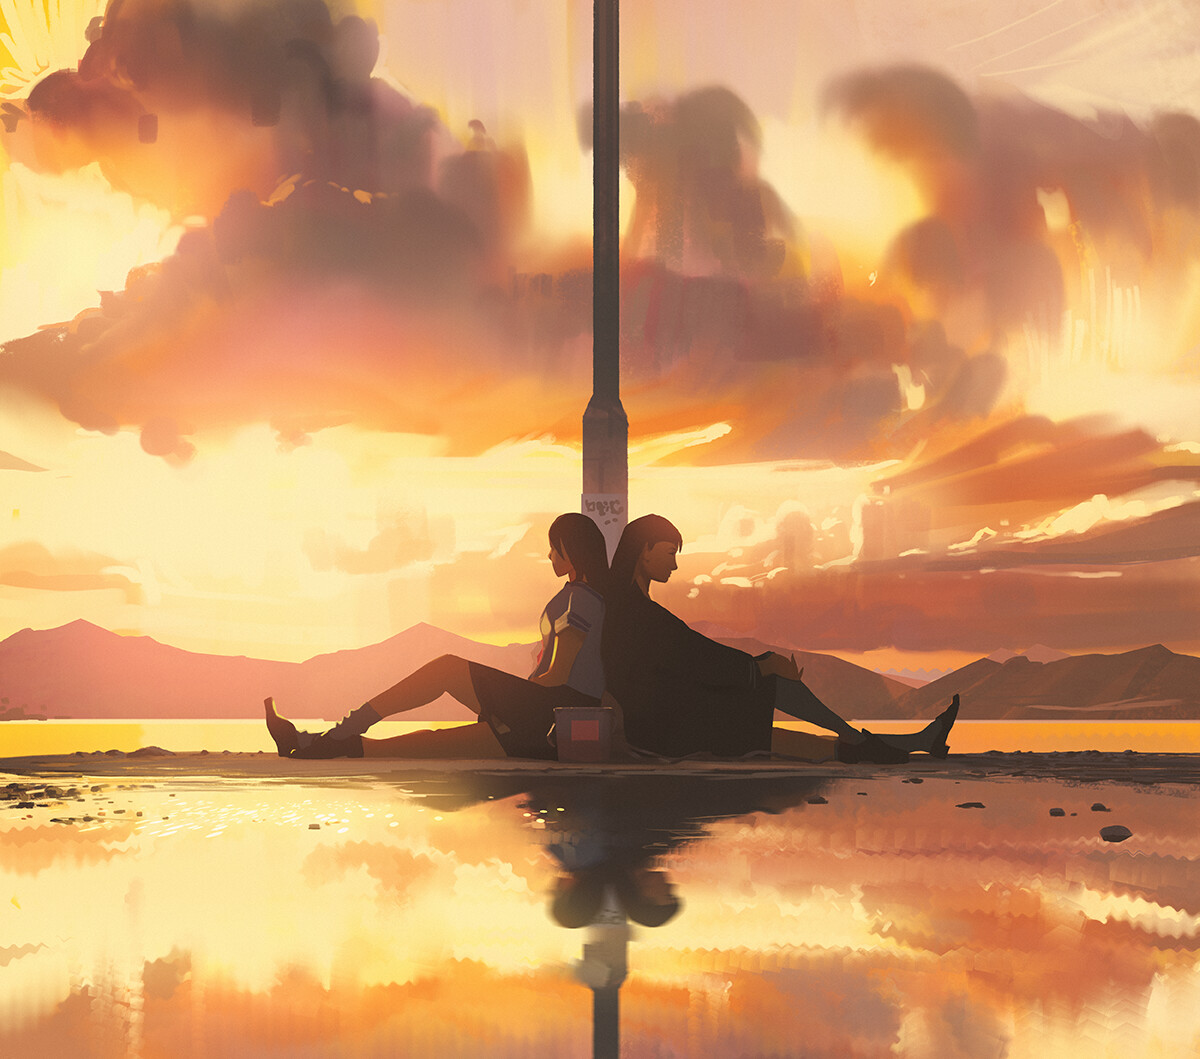 Sketch collection 3 2019 Two sides, Atey Ghailan_02